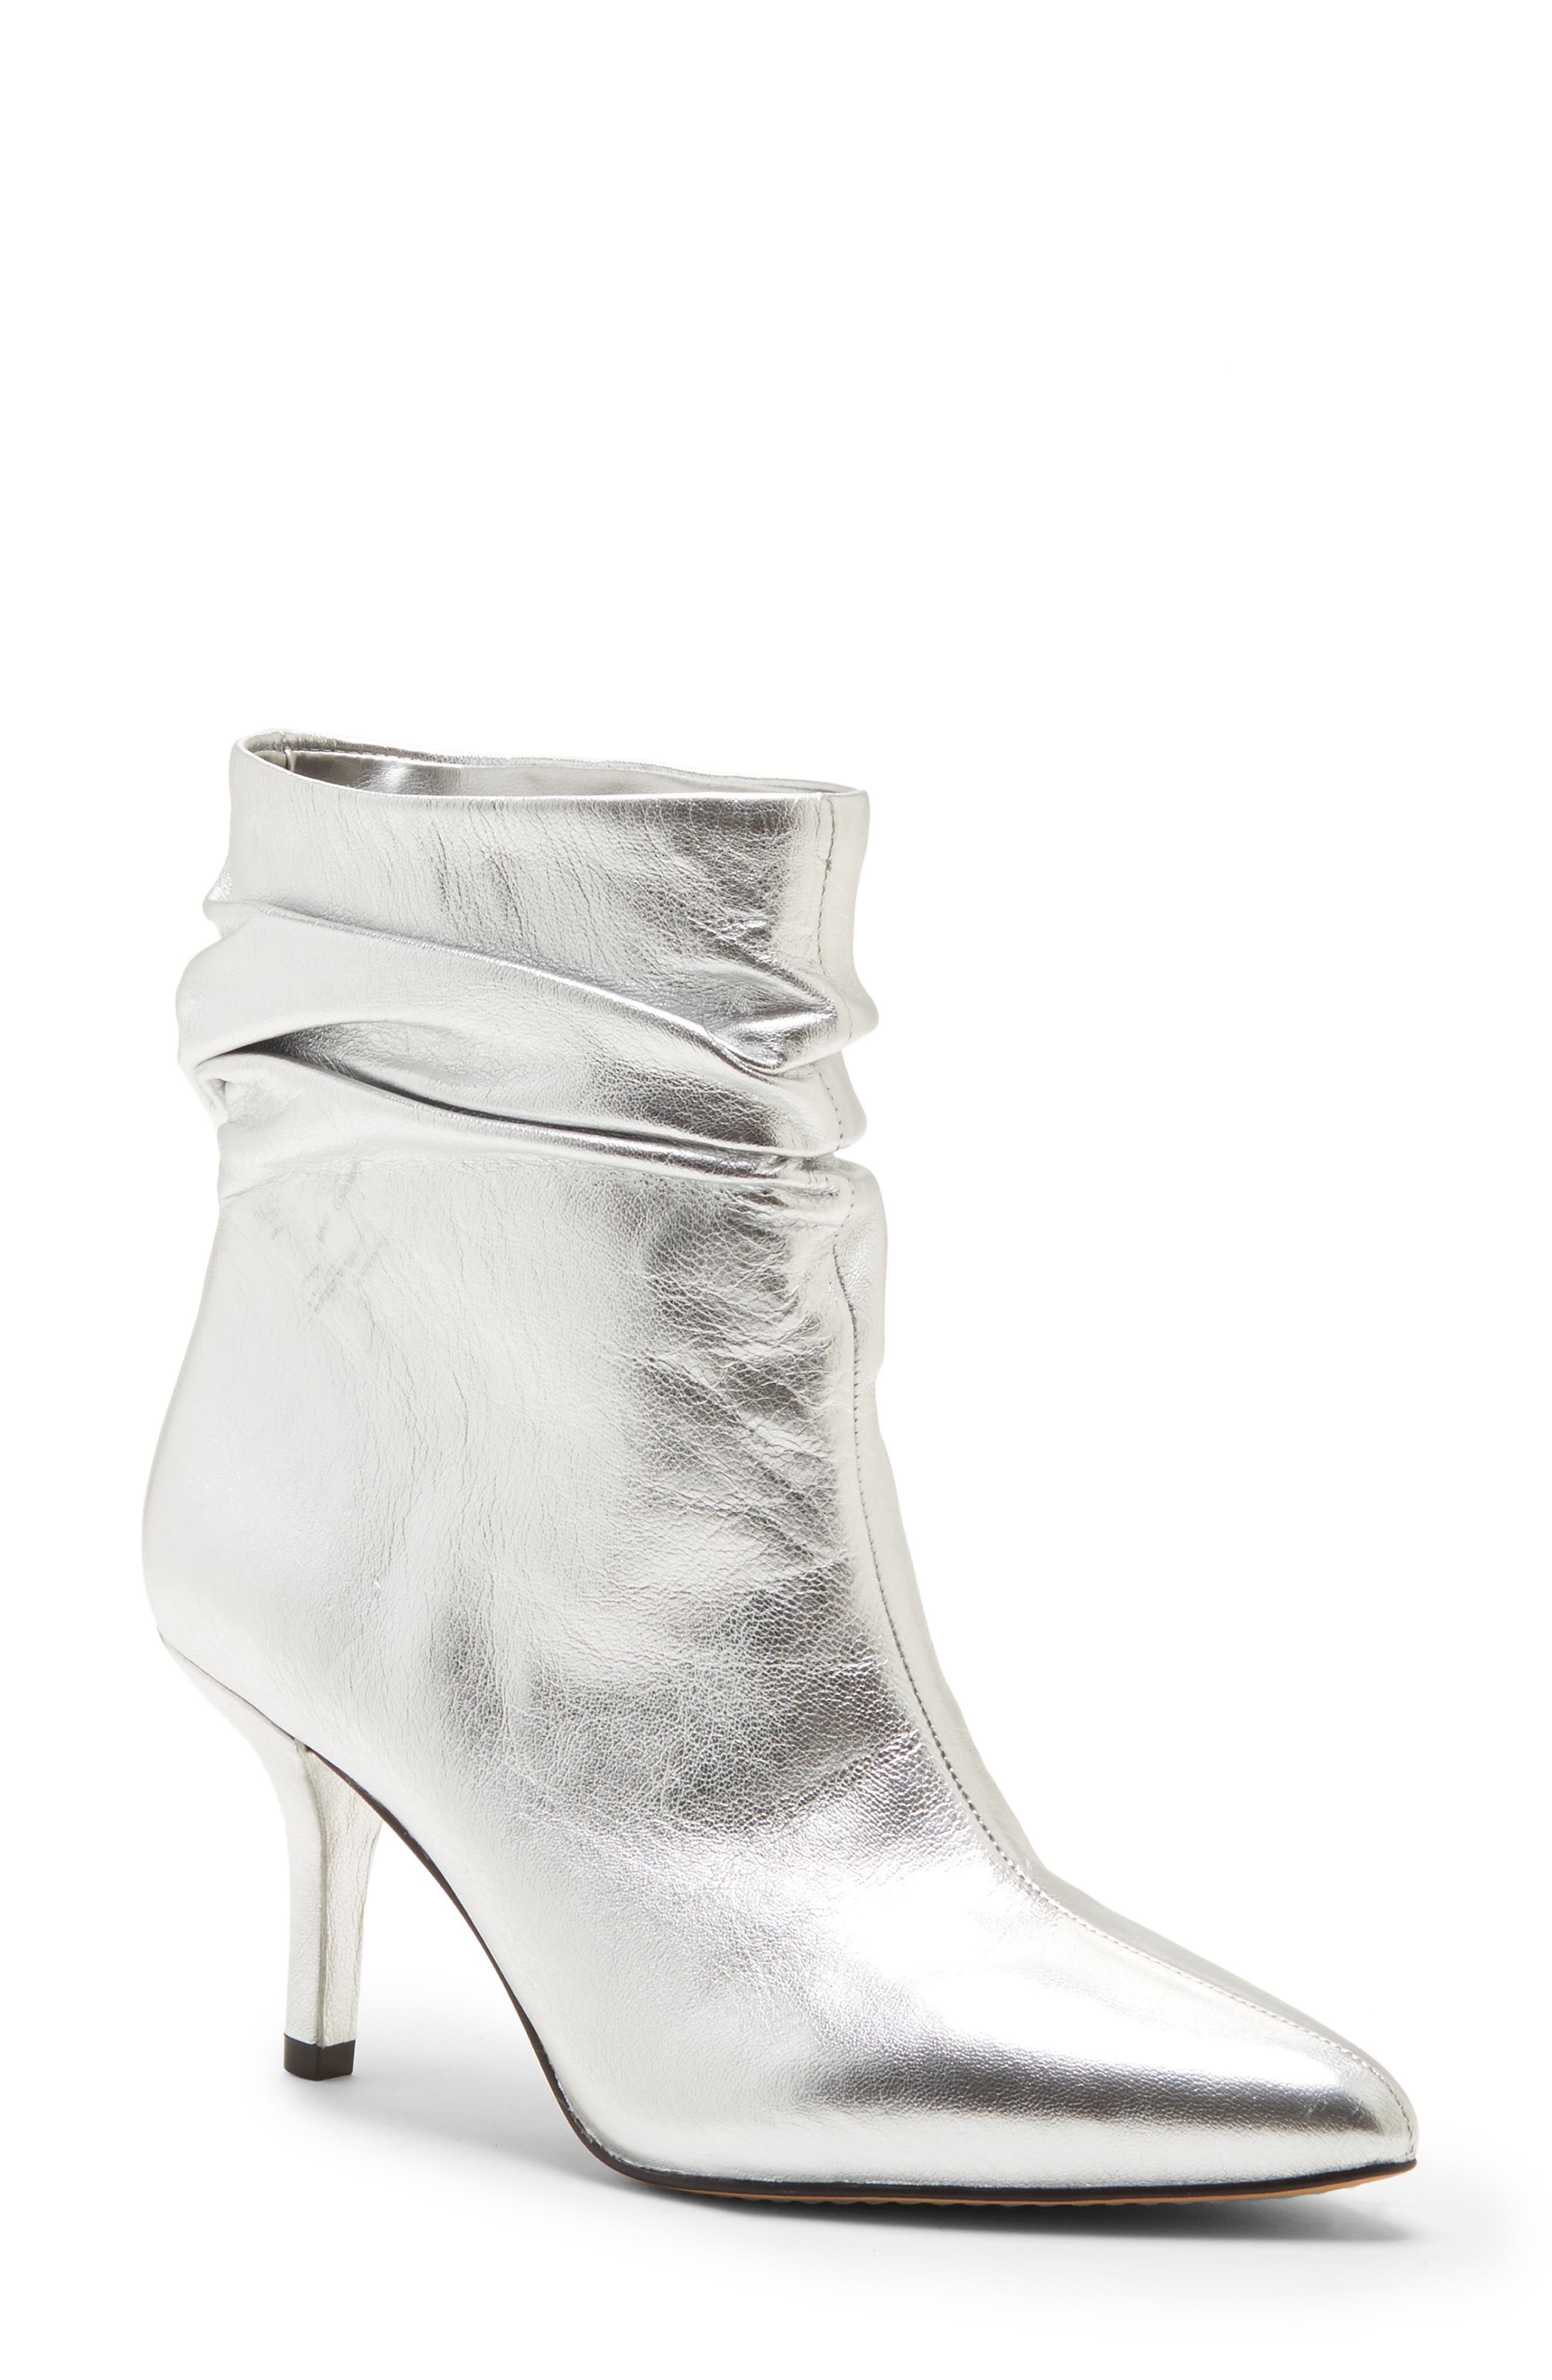 VINCE CAMUTO, Abrianna Bootie, Main thumbnail 1, color, GLEAMING SILVER LEATHER